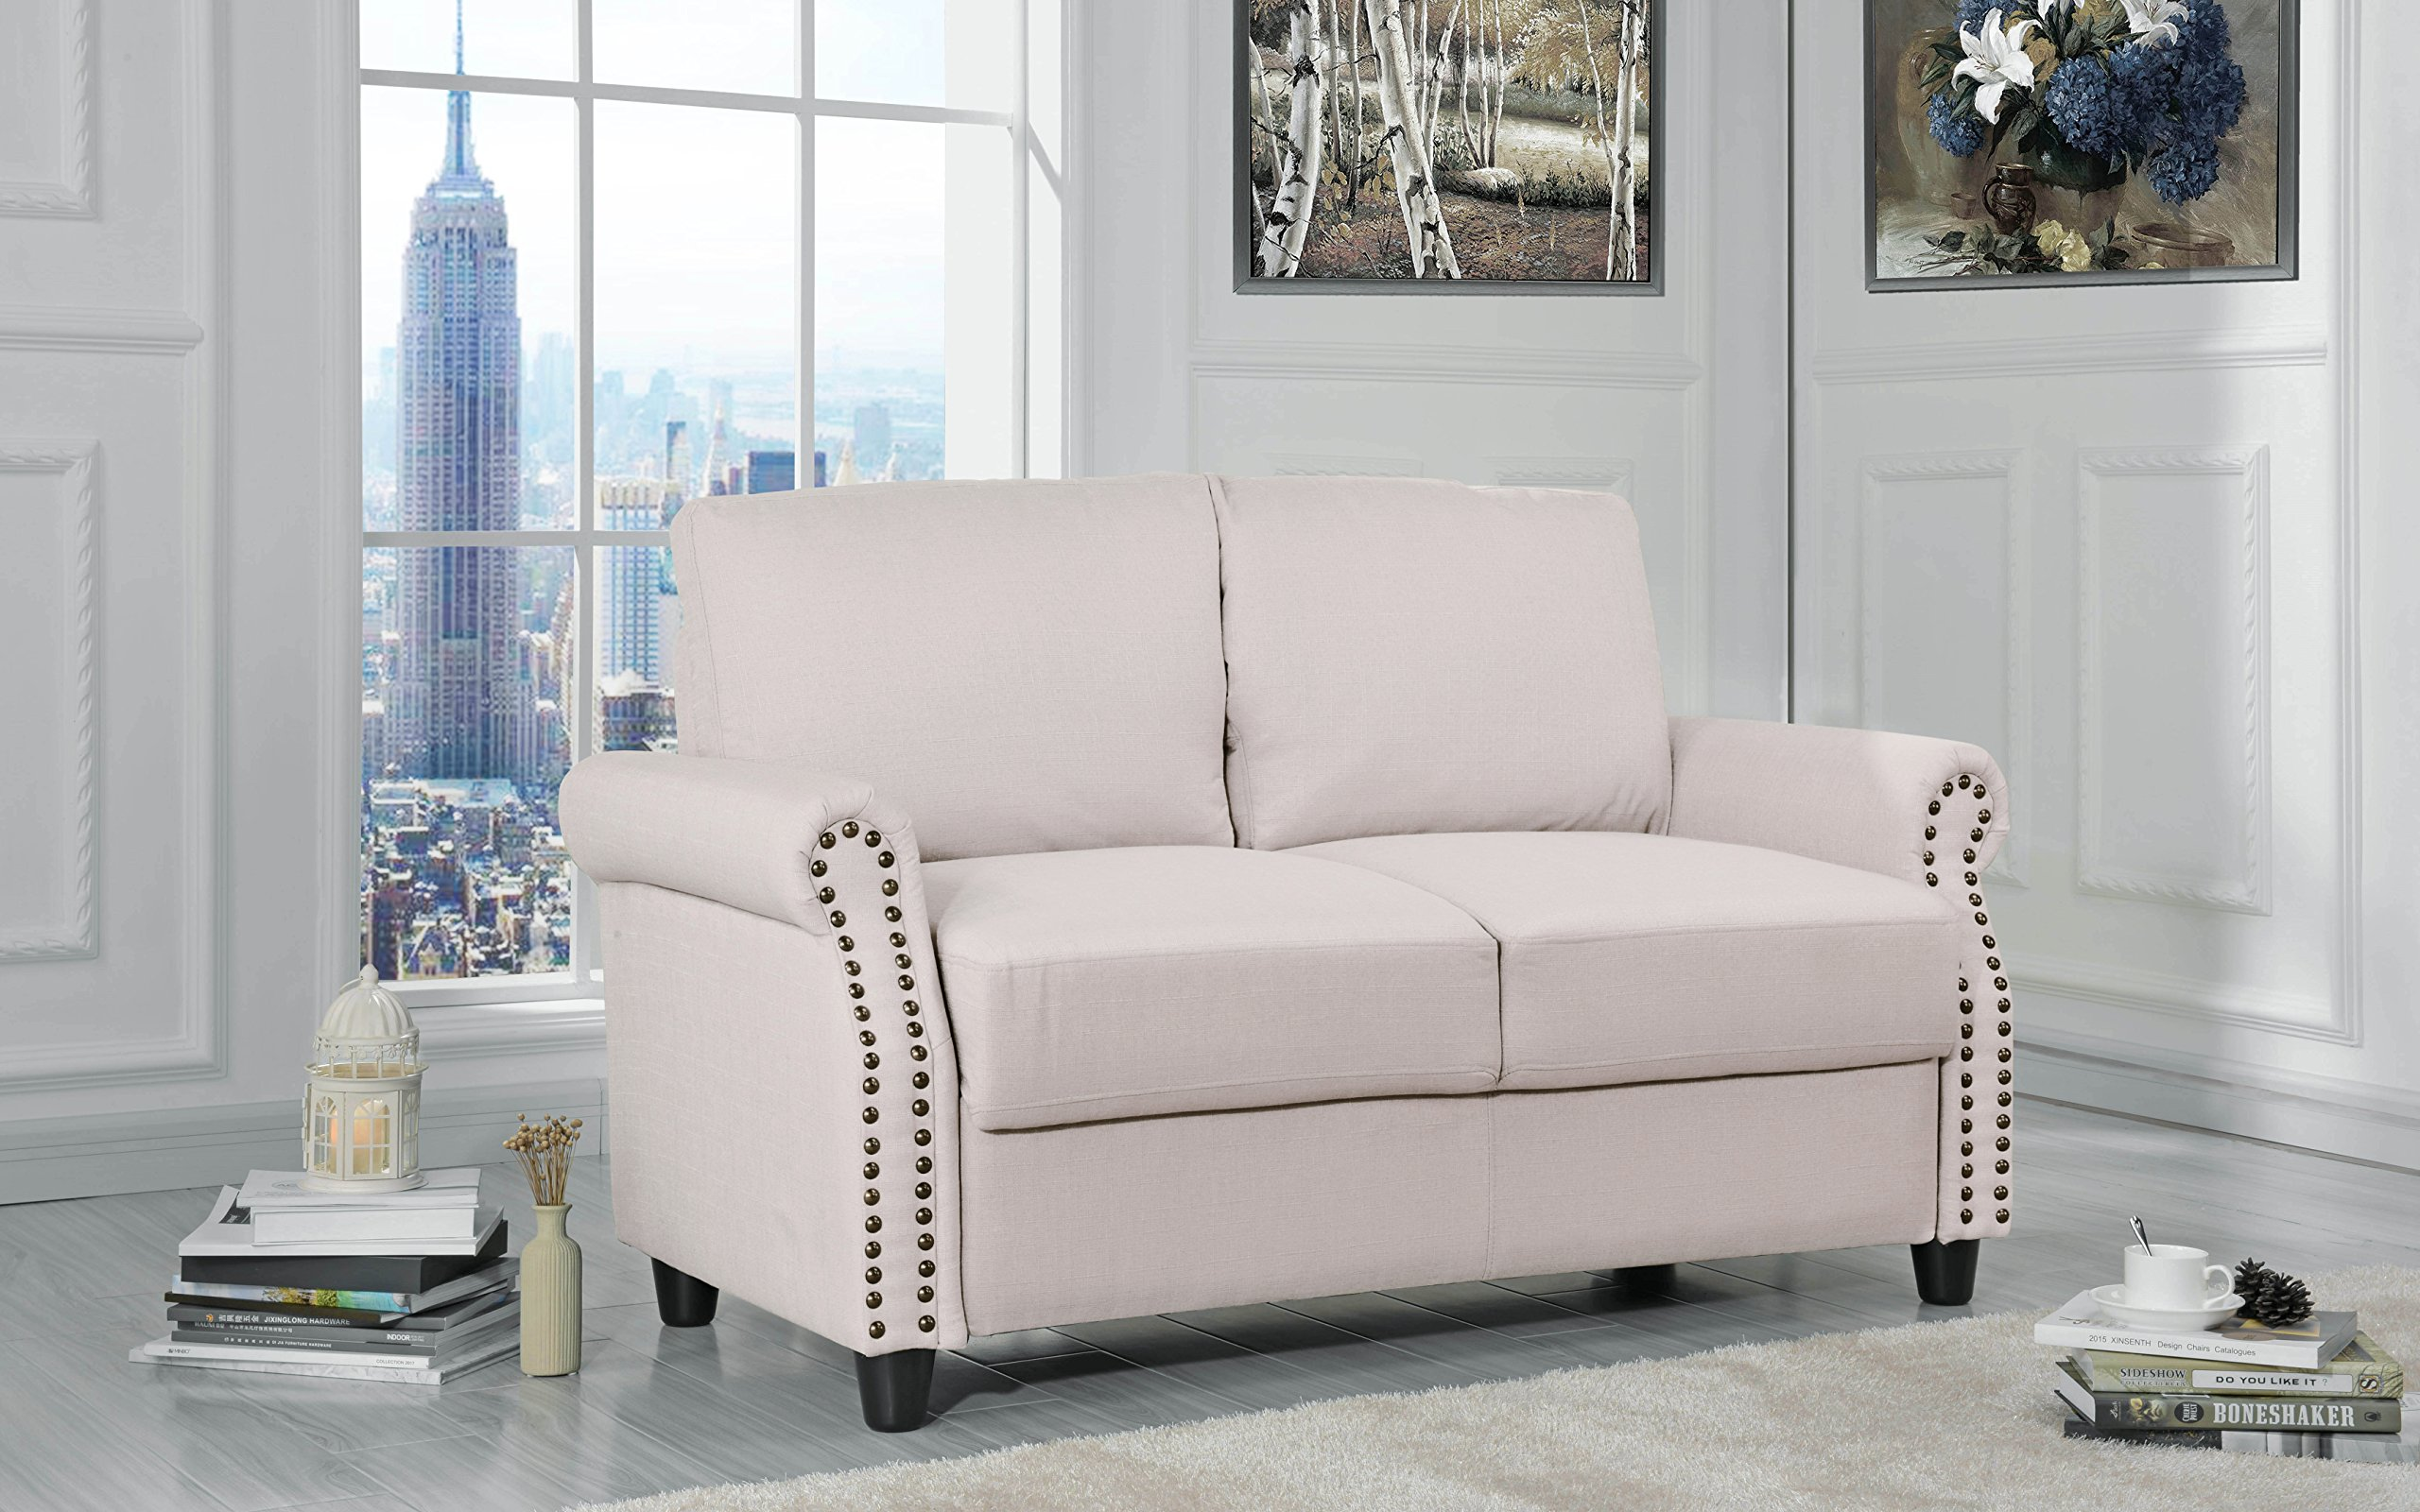 Classic Living Room Linen Loveseat with Nailhead Trim and Storage Space (Beige)